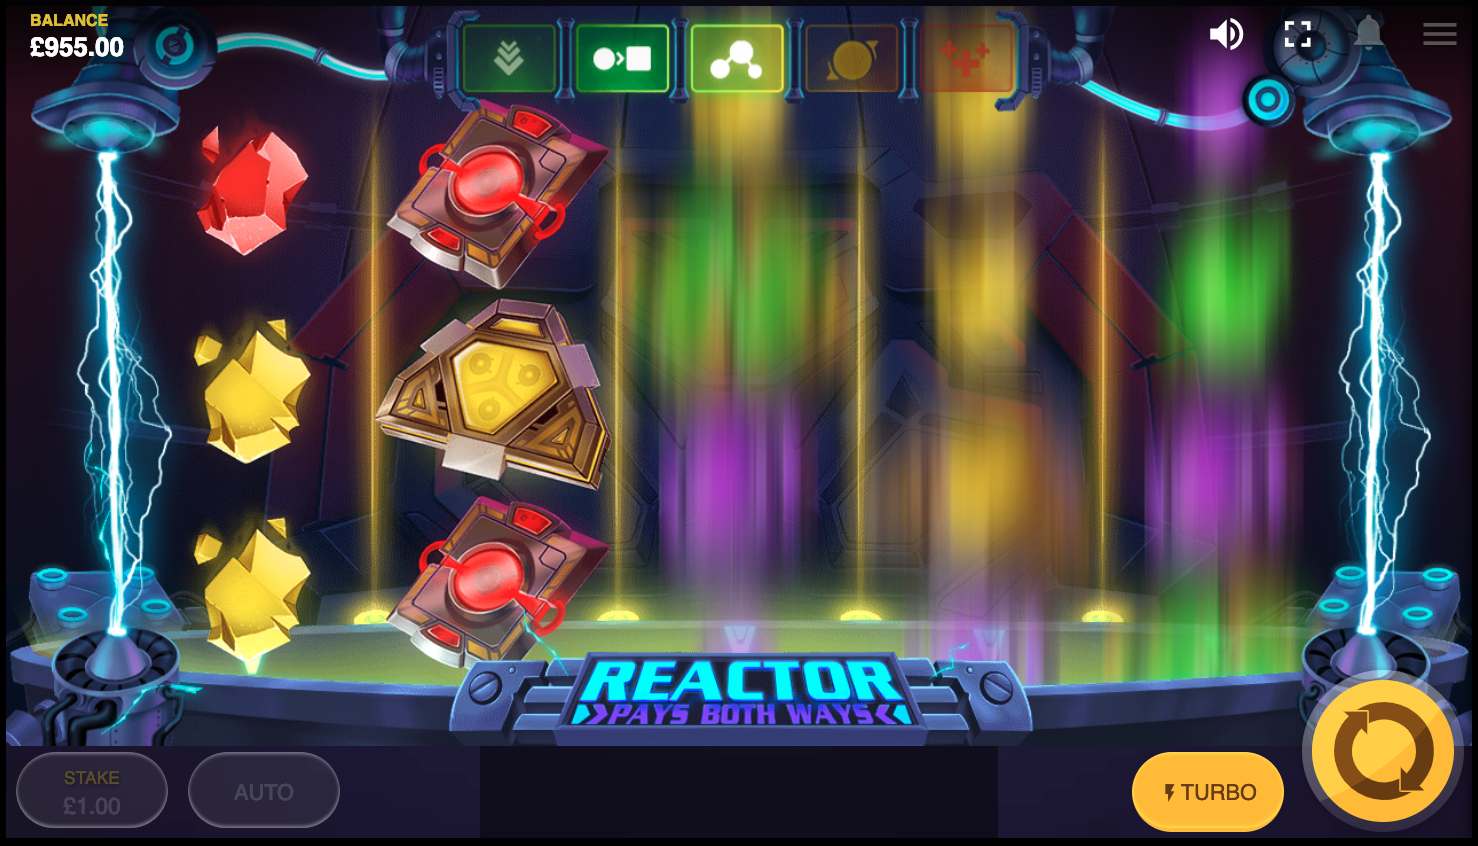 Reactor respin feature